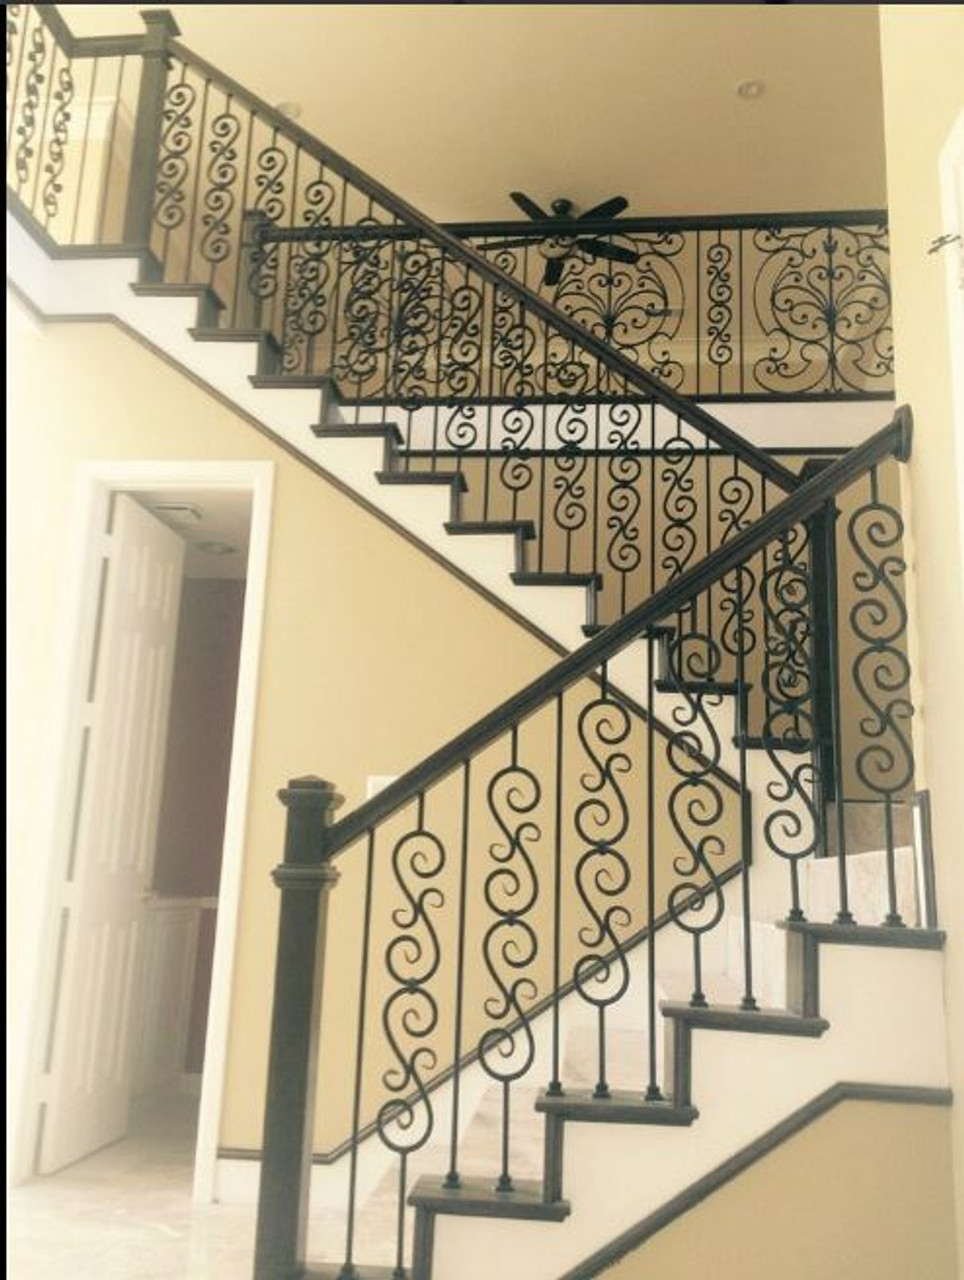 2583 Lt Double Scroll In Tubular Steel Westfire Stair Parts   Tubular Design For Stairs   Stainless Steel   Fully Covered Balcony Grill   Fabrication   Simple   Industrial